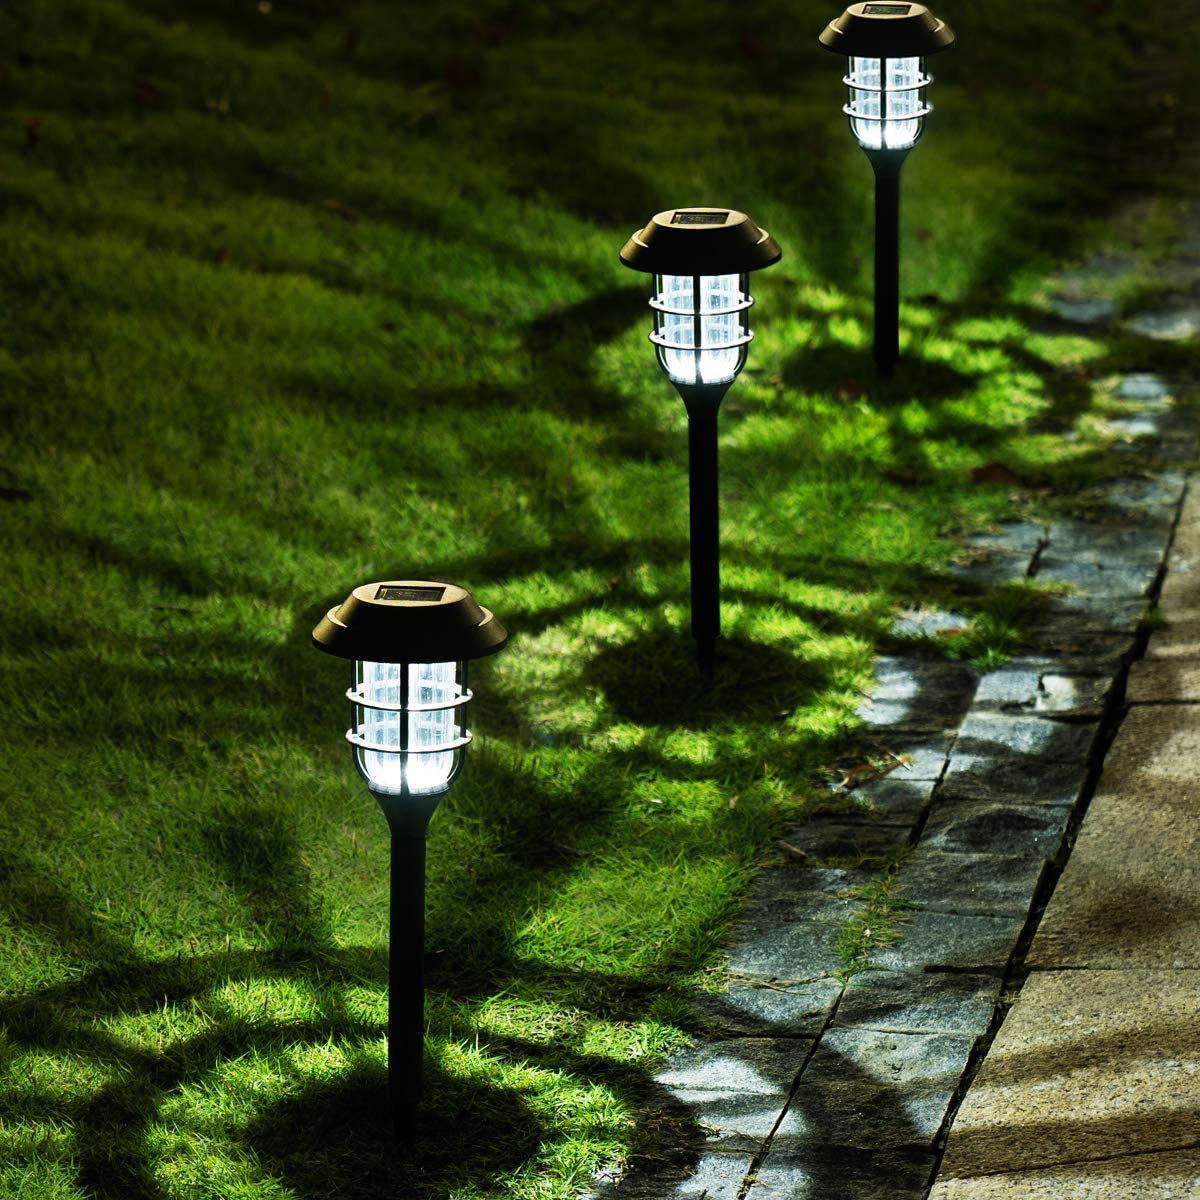 24 LED Solar Powered Pathway Lights Landscape Outdoor Patio Garden Walkway Yard